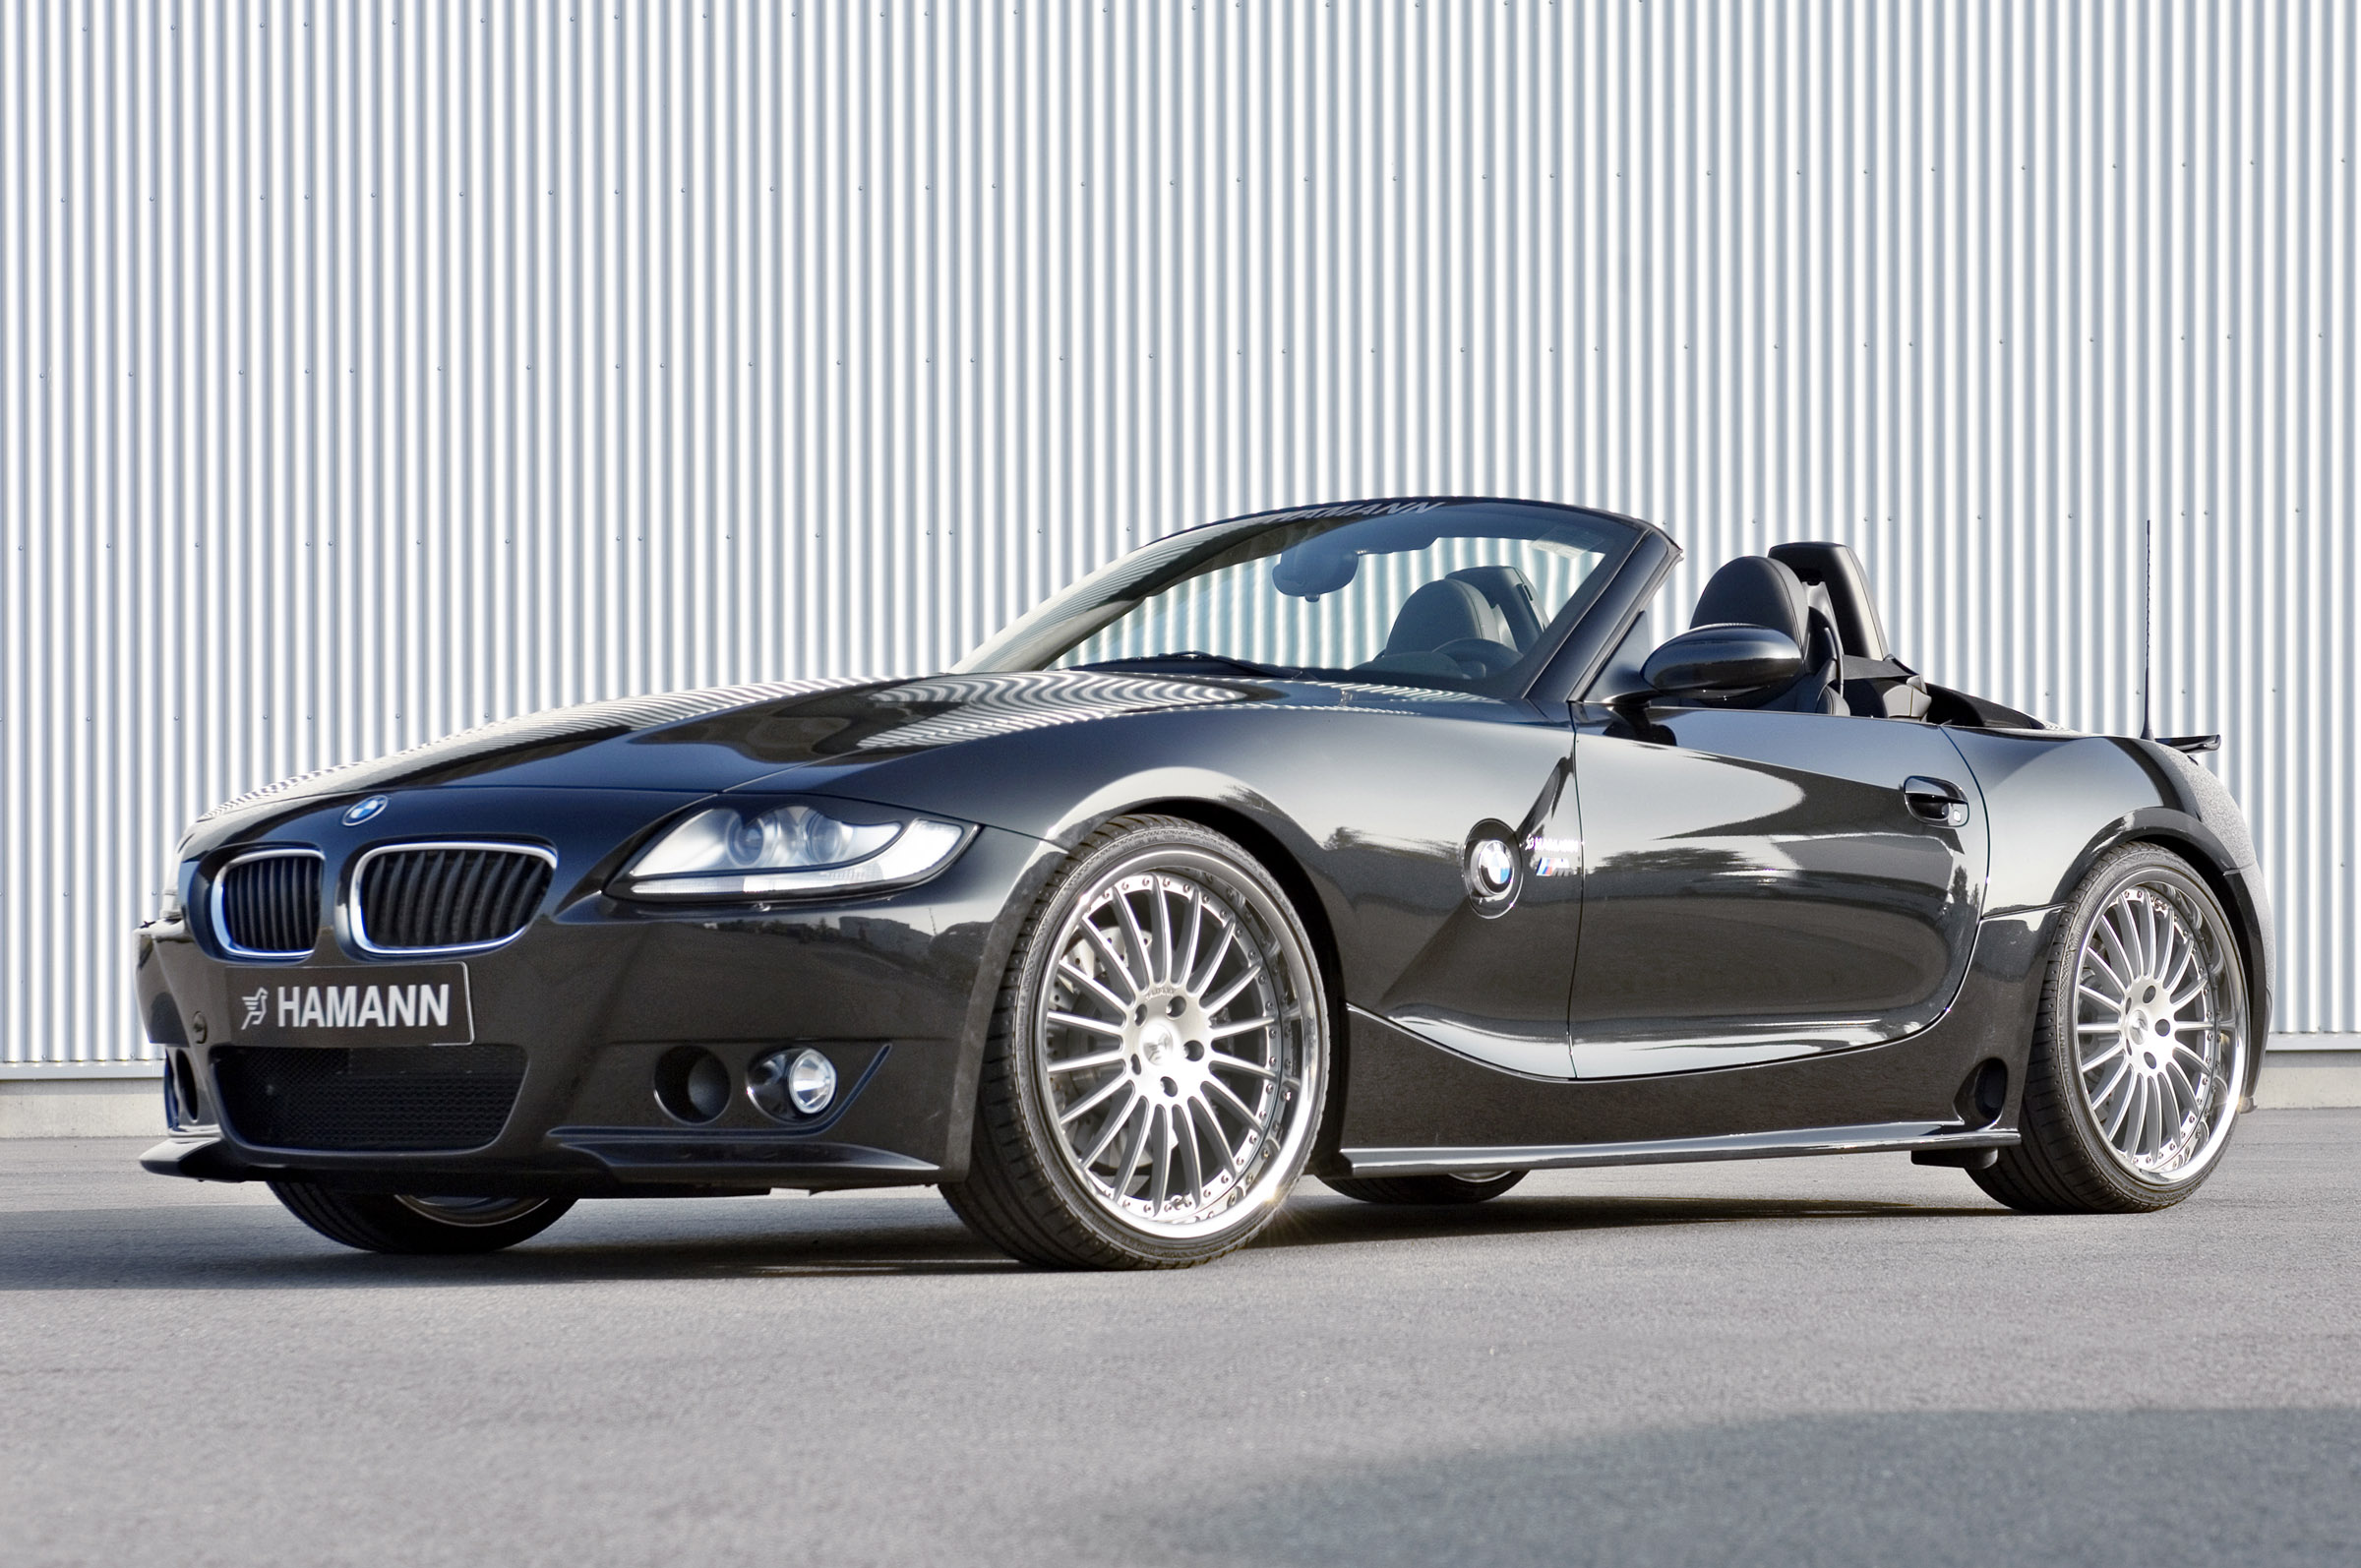 Hamann Bmw Z4 M Roadster Picture 17117